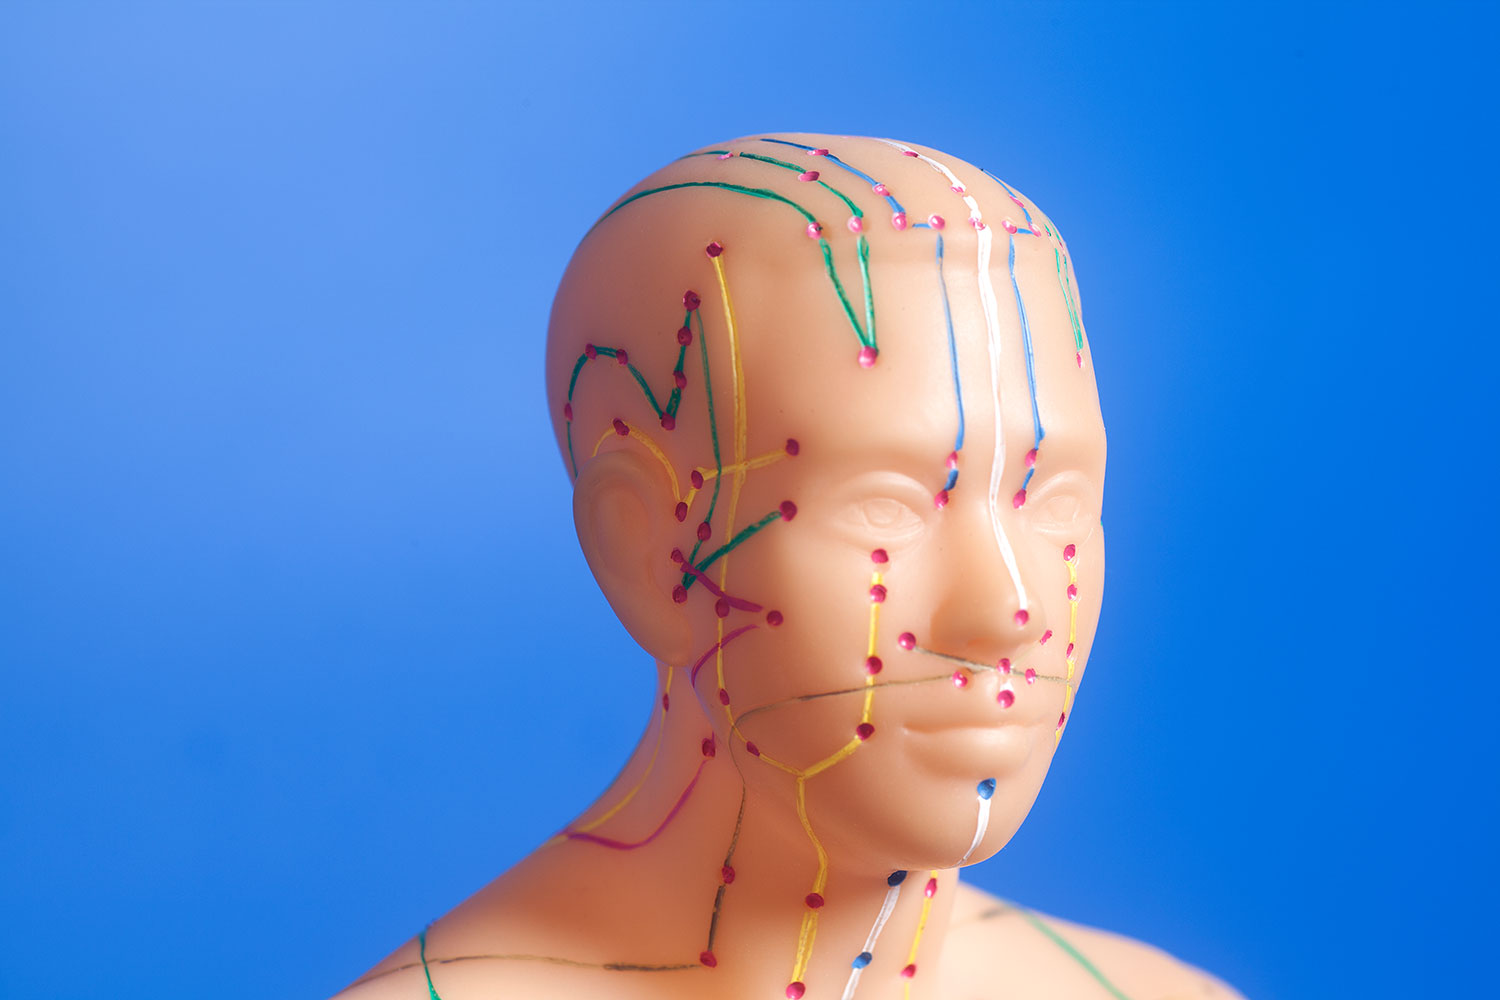 acupuncture-meridians-head-and-face.jpg